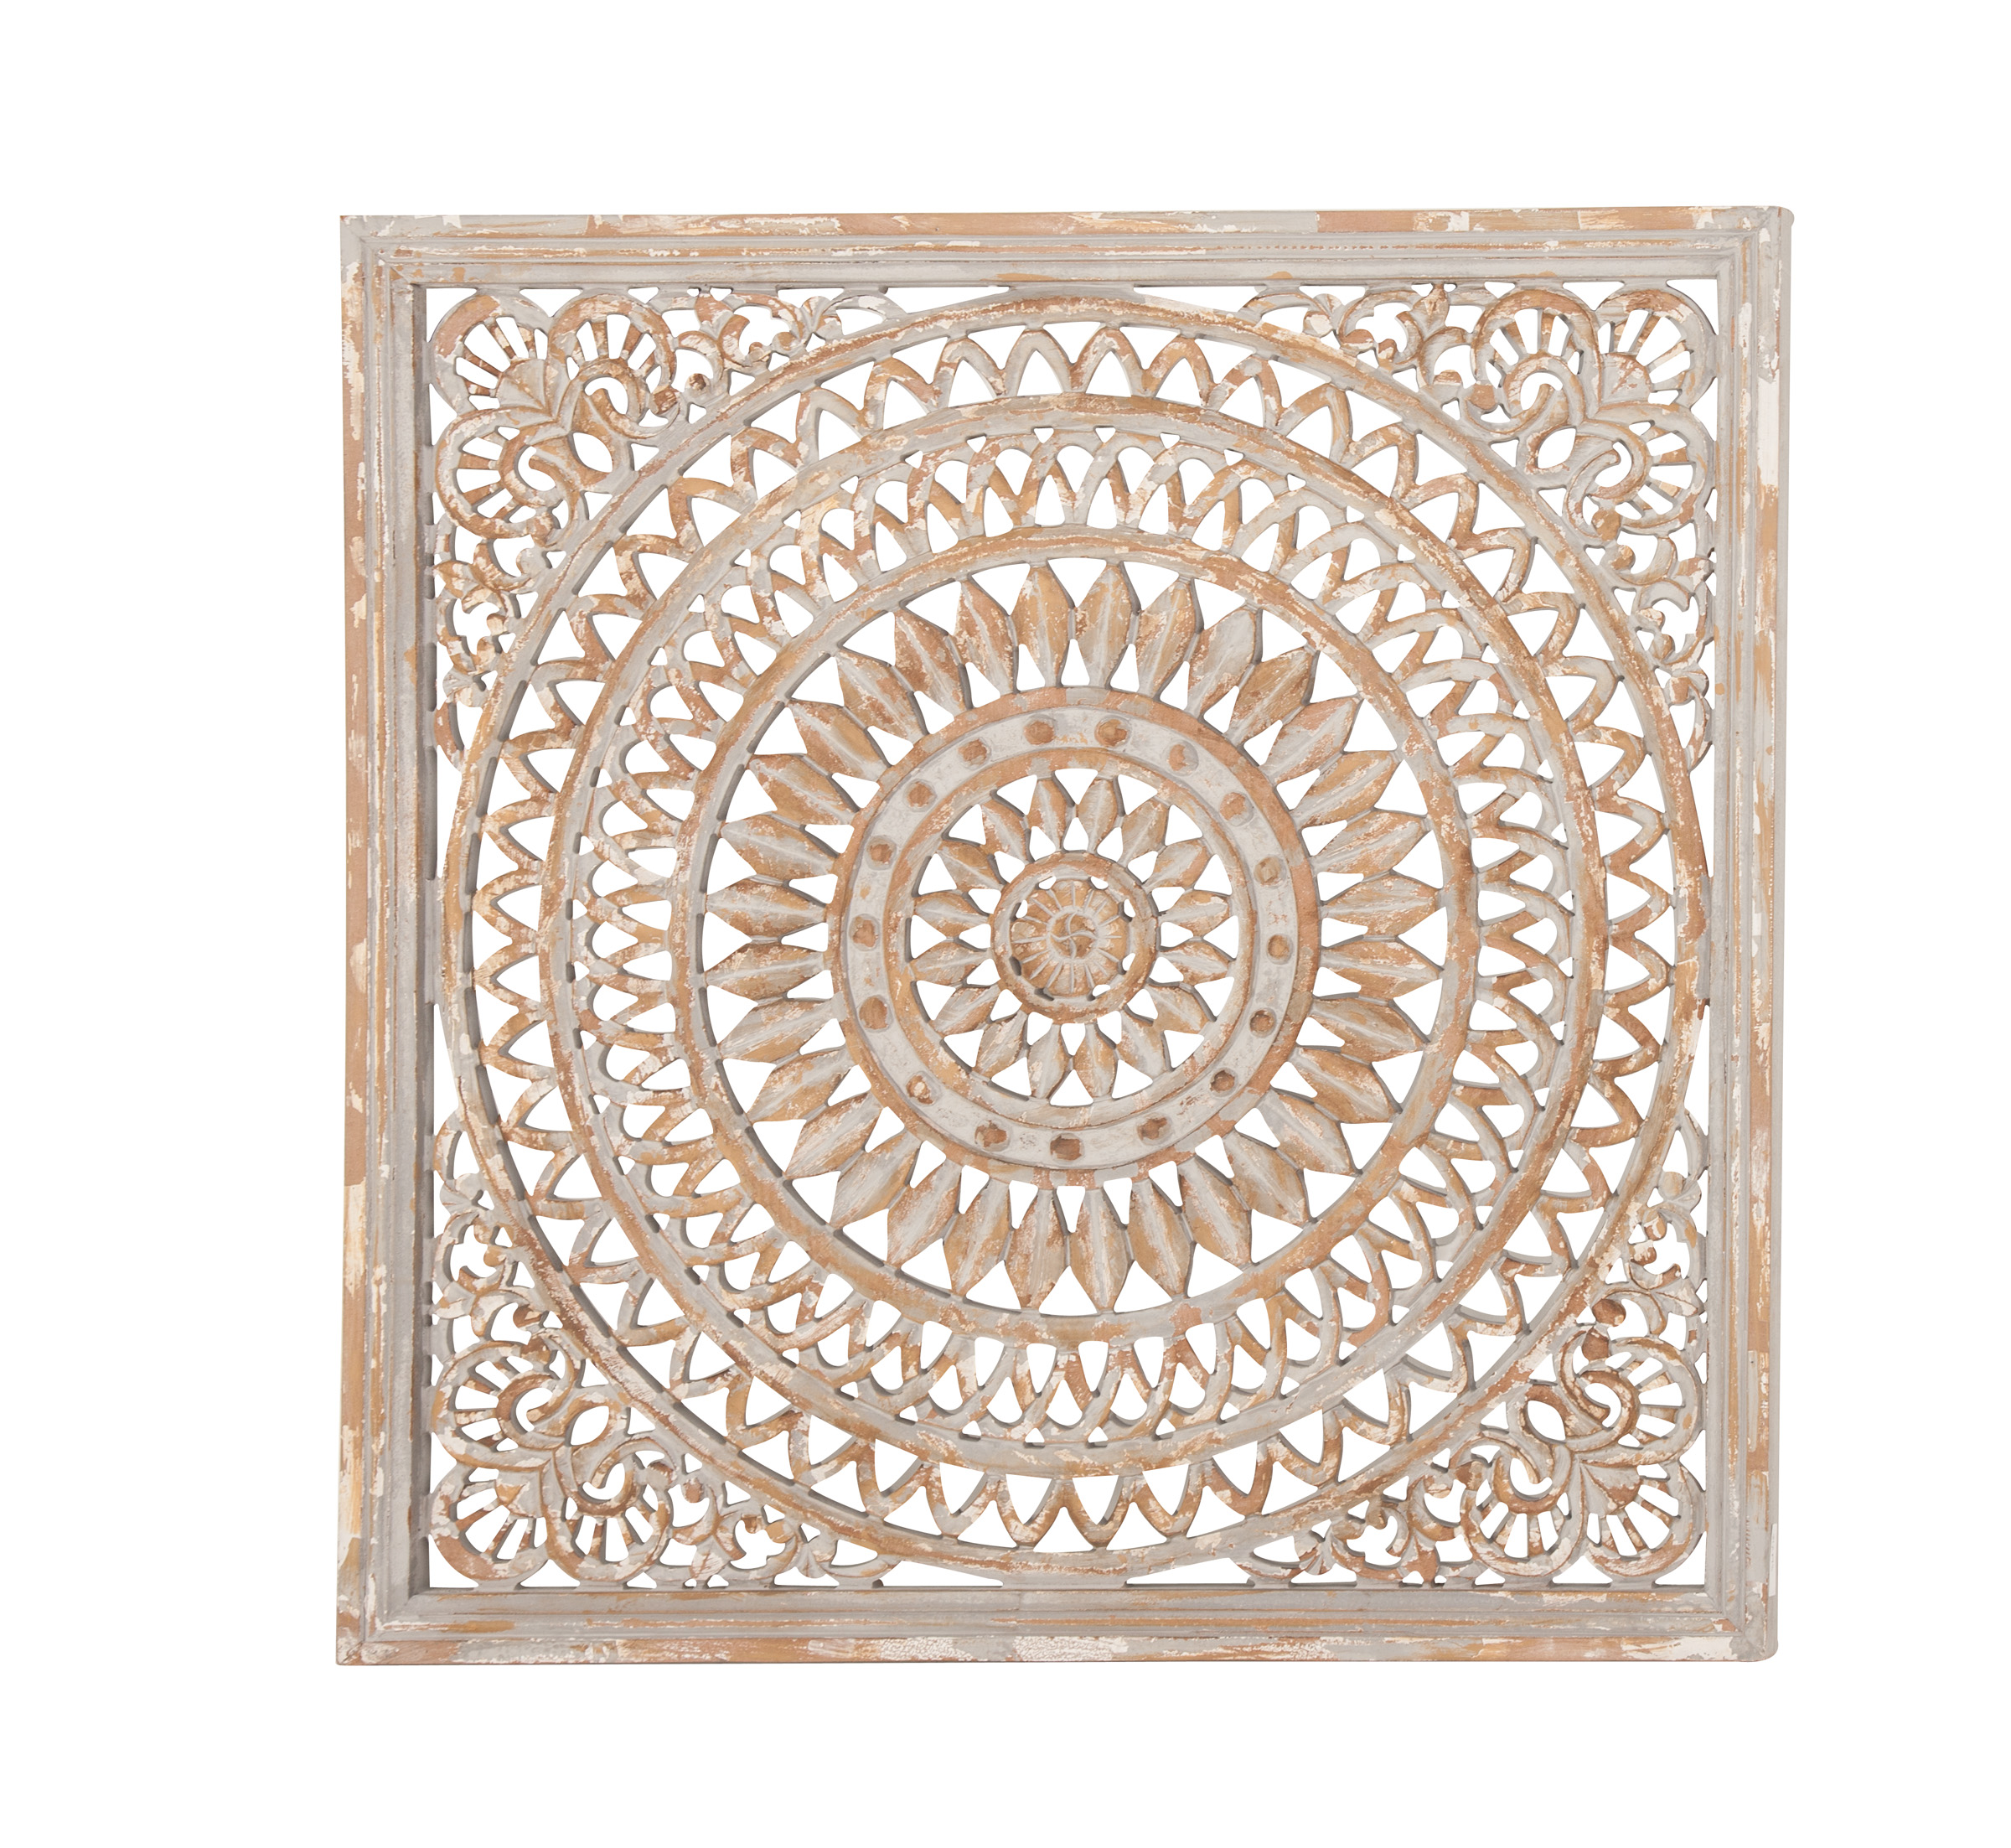 Decmode Rustic 36 X 36 Inch Square Wood Ornate Carved Framed Wall Decor